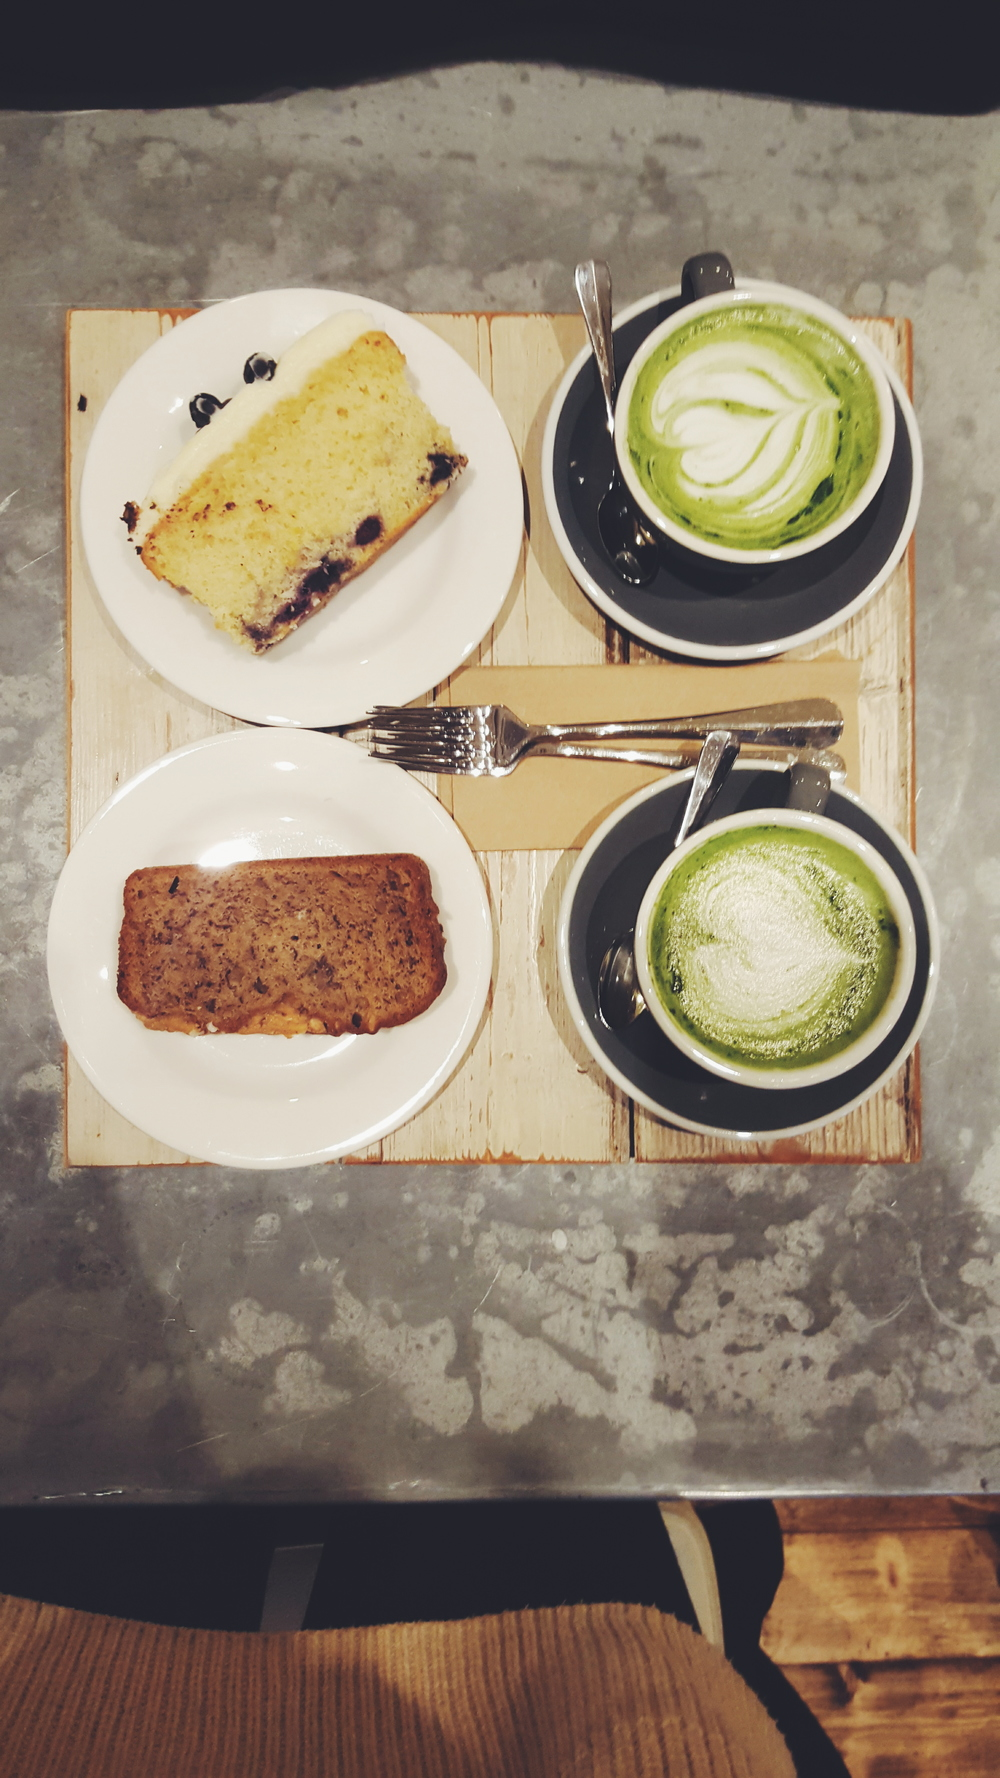 Matcha latte at Timberyard, Soho